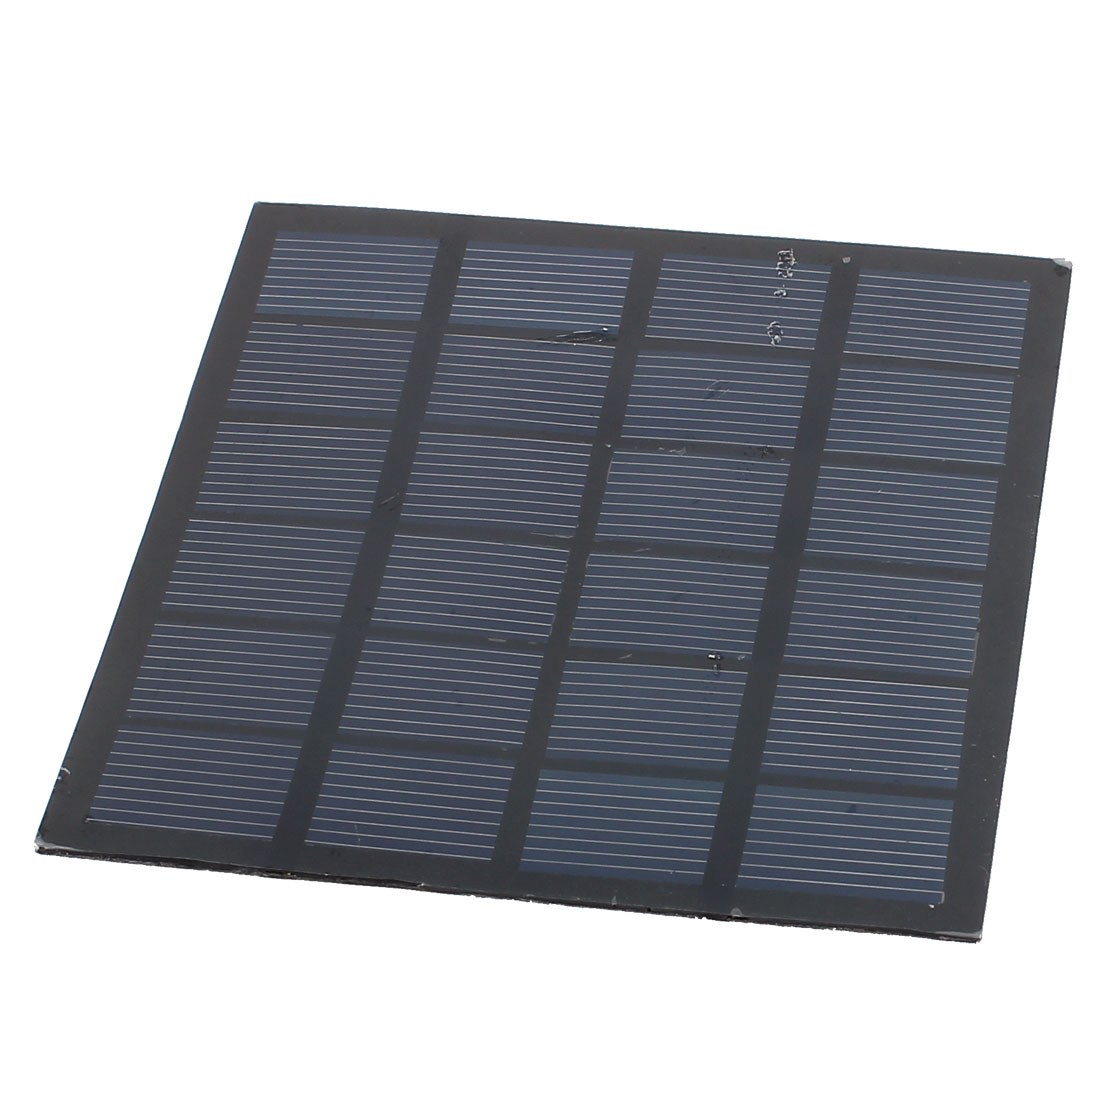 DC 6V 1.5W Square Energy Saving Solar Cell Panel Module for Charger